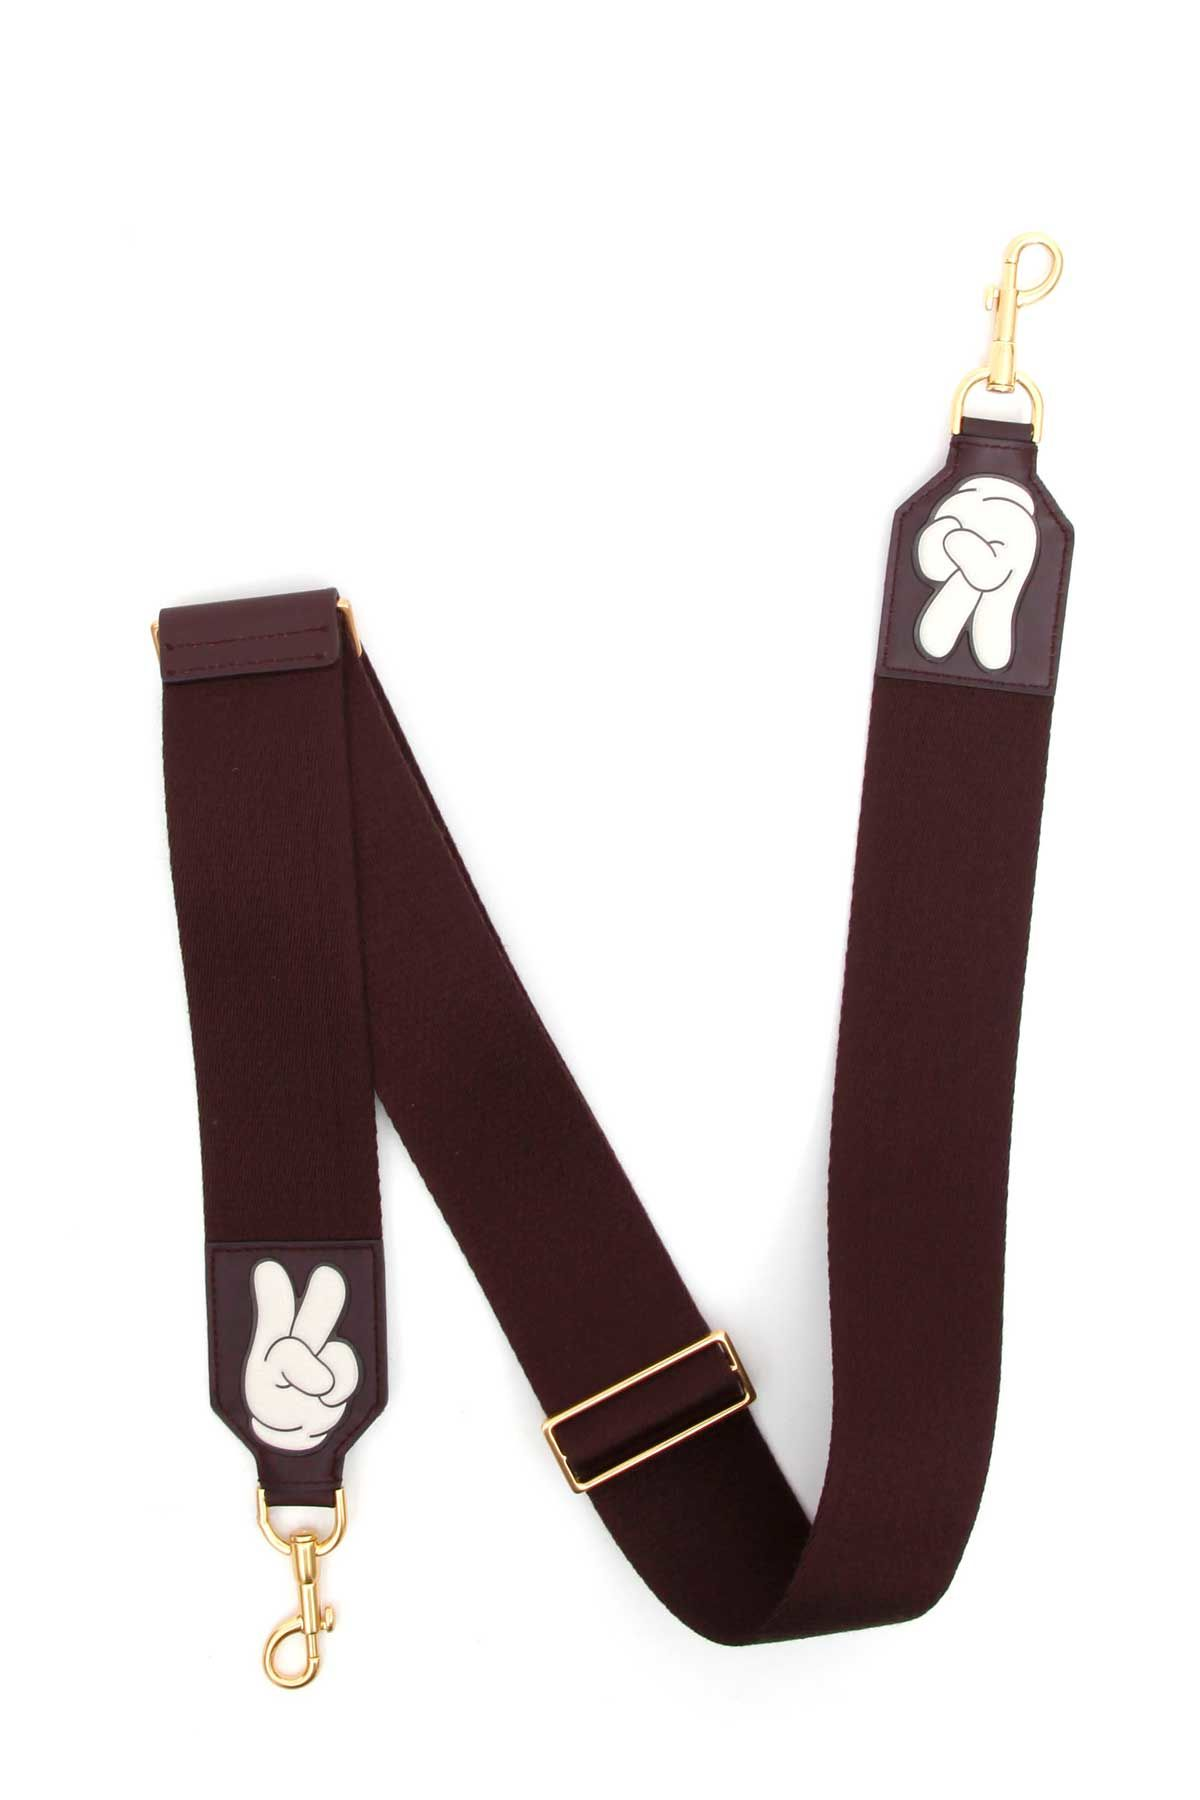 Anya Hindmarch victory Shoulder Strap